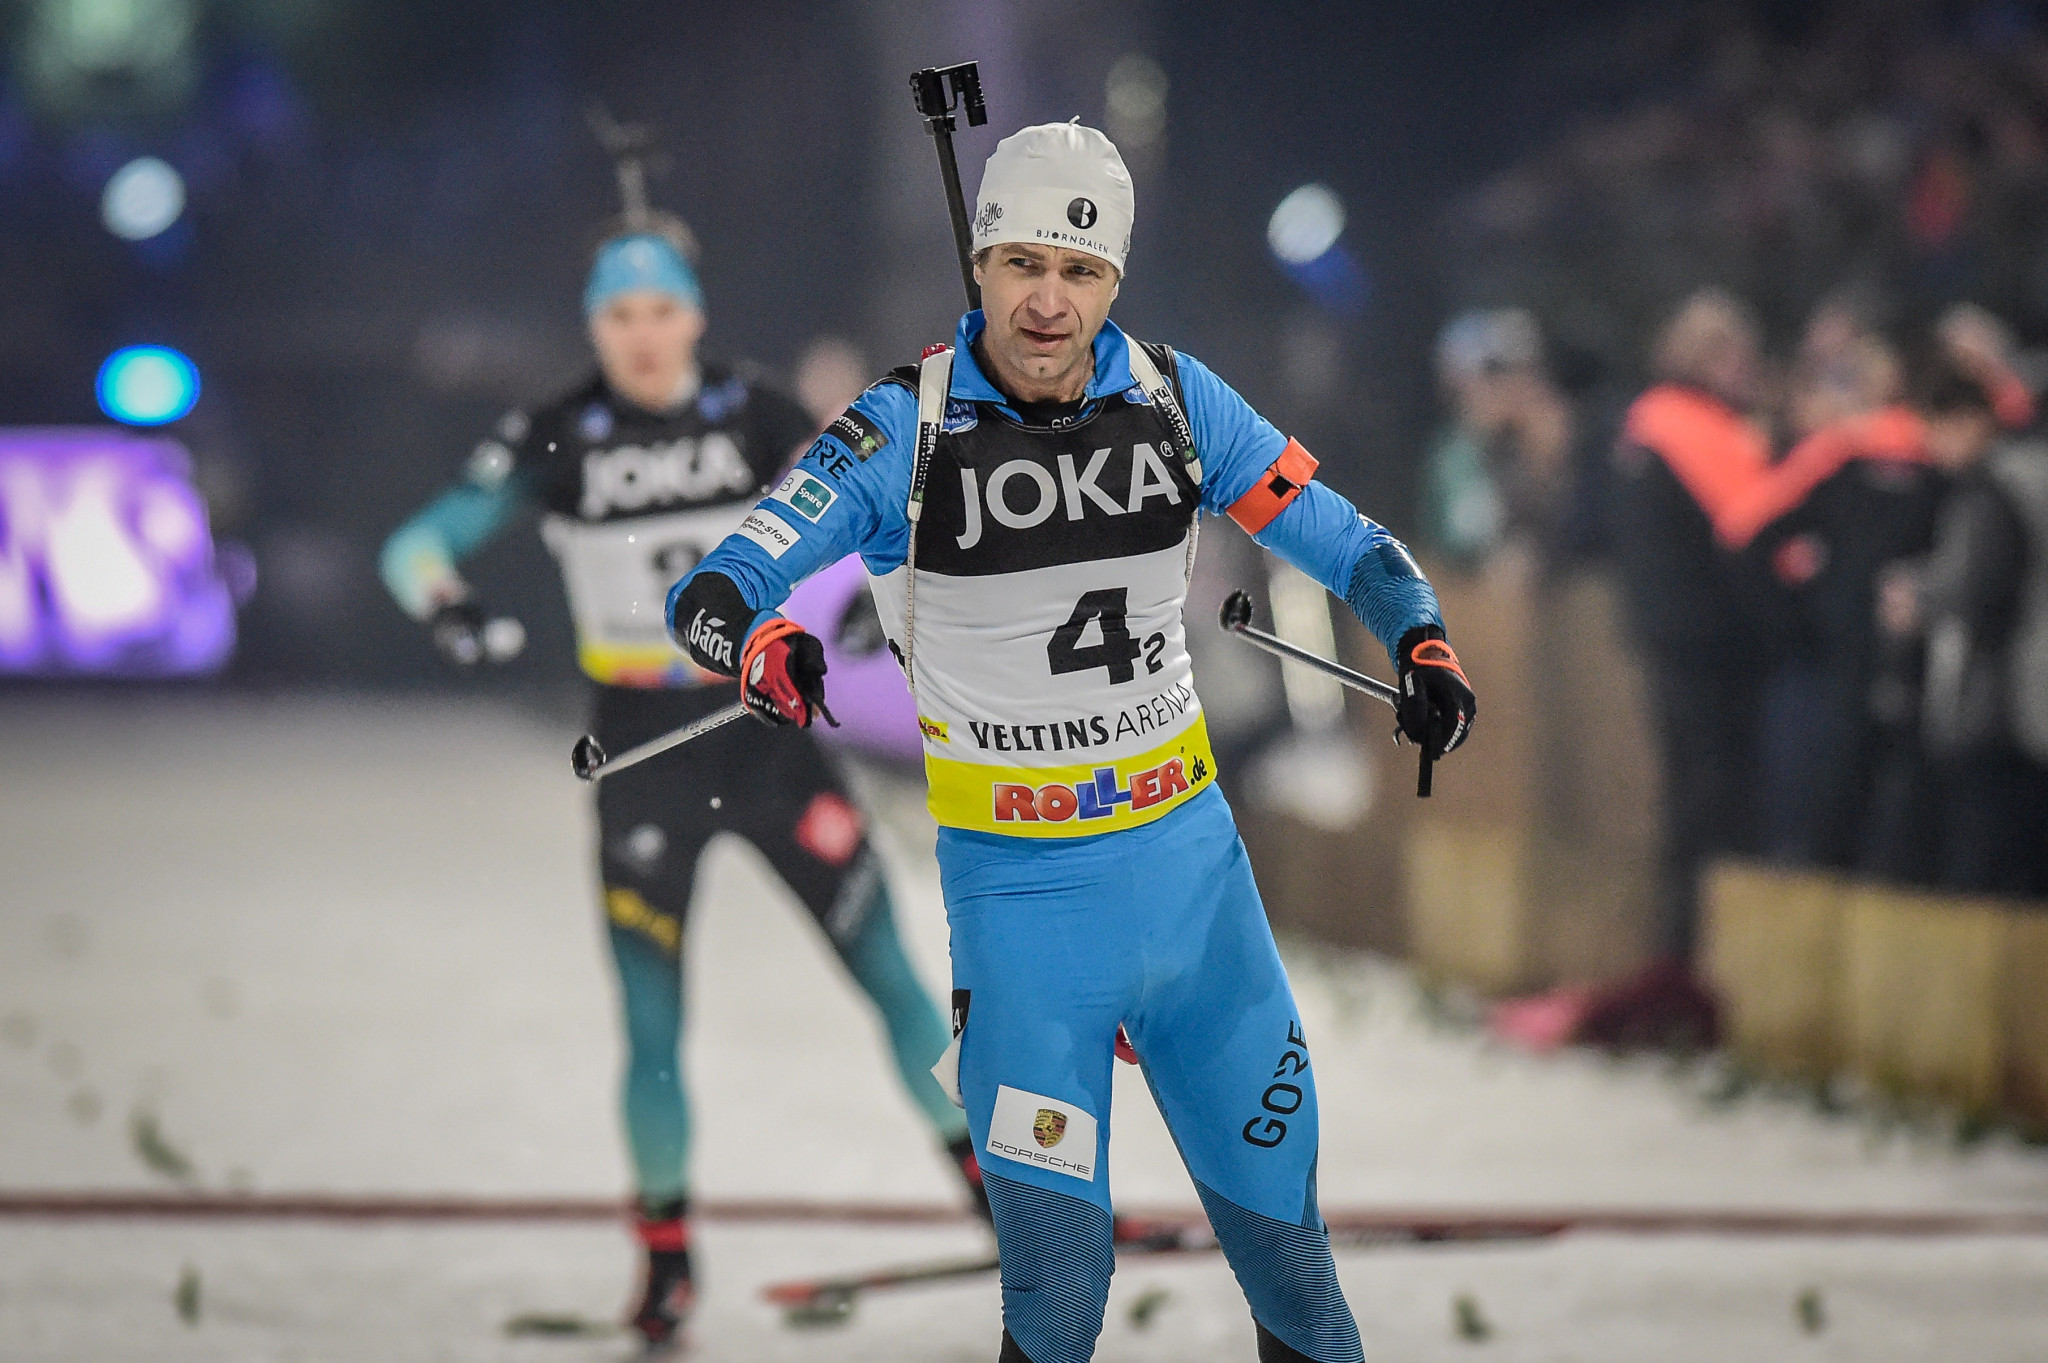 Ole Einar Bjørndalen is the most decorated biathlete at the Winter Olympic Games with 13 medals ©Getty Images